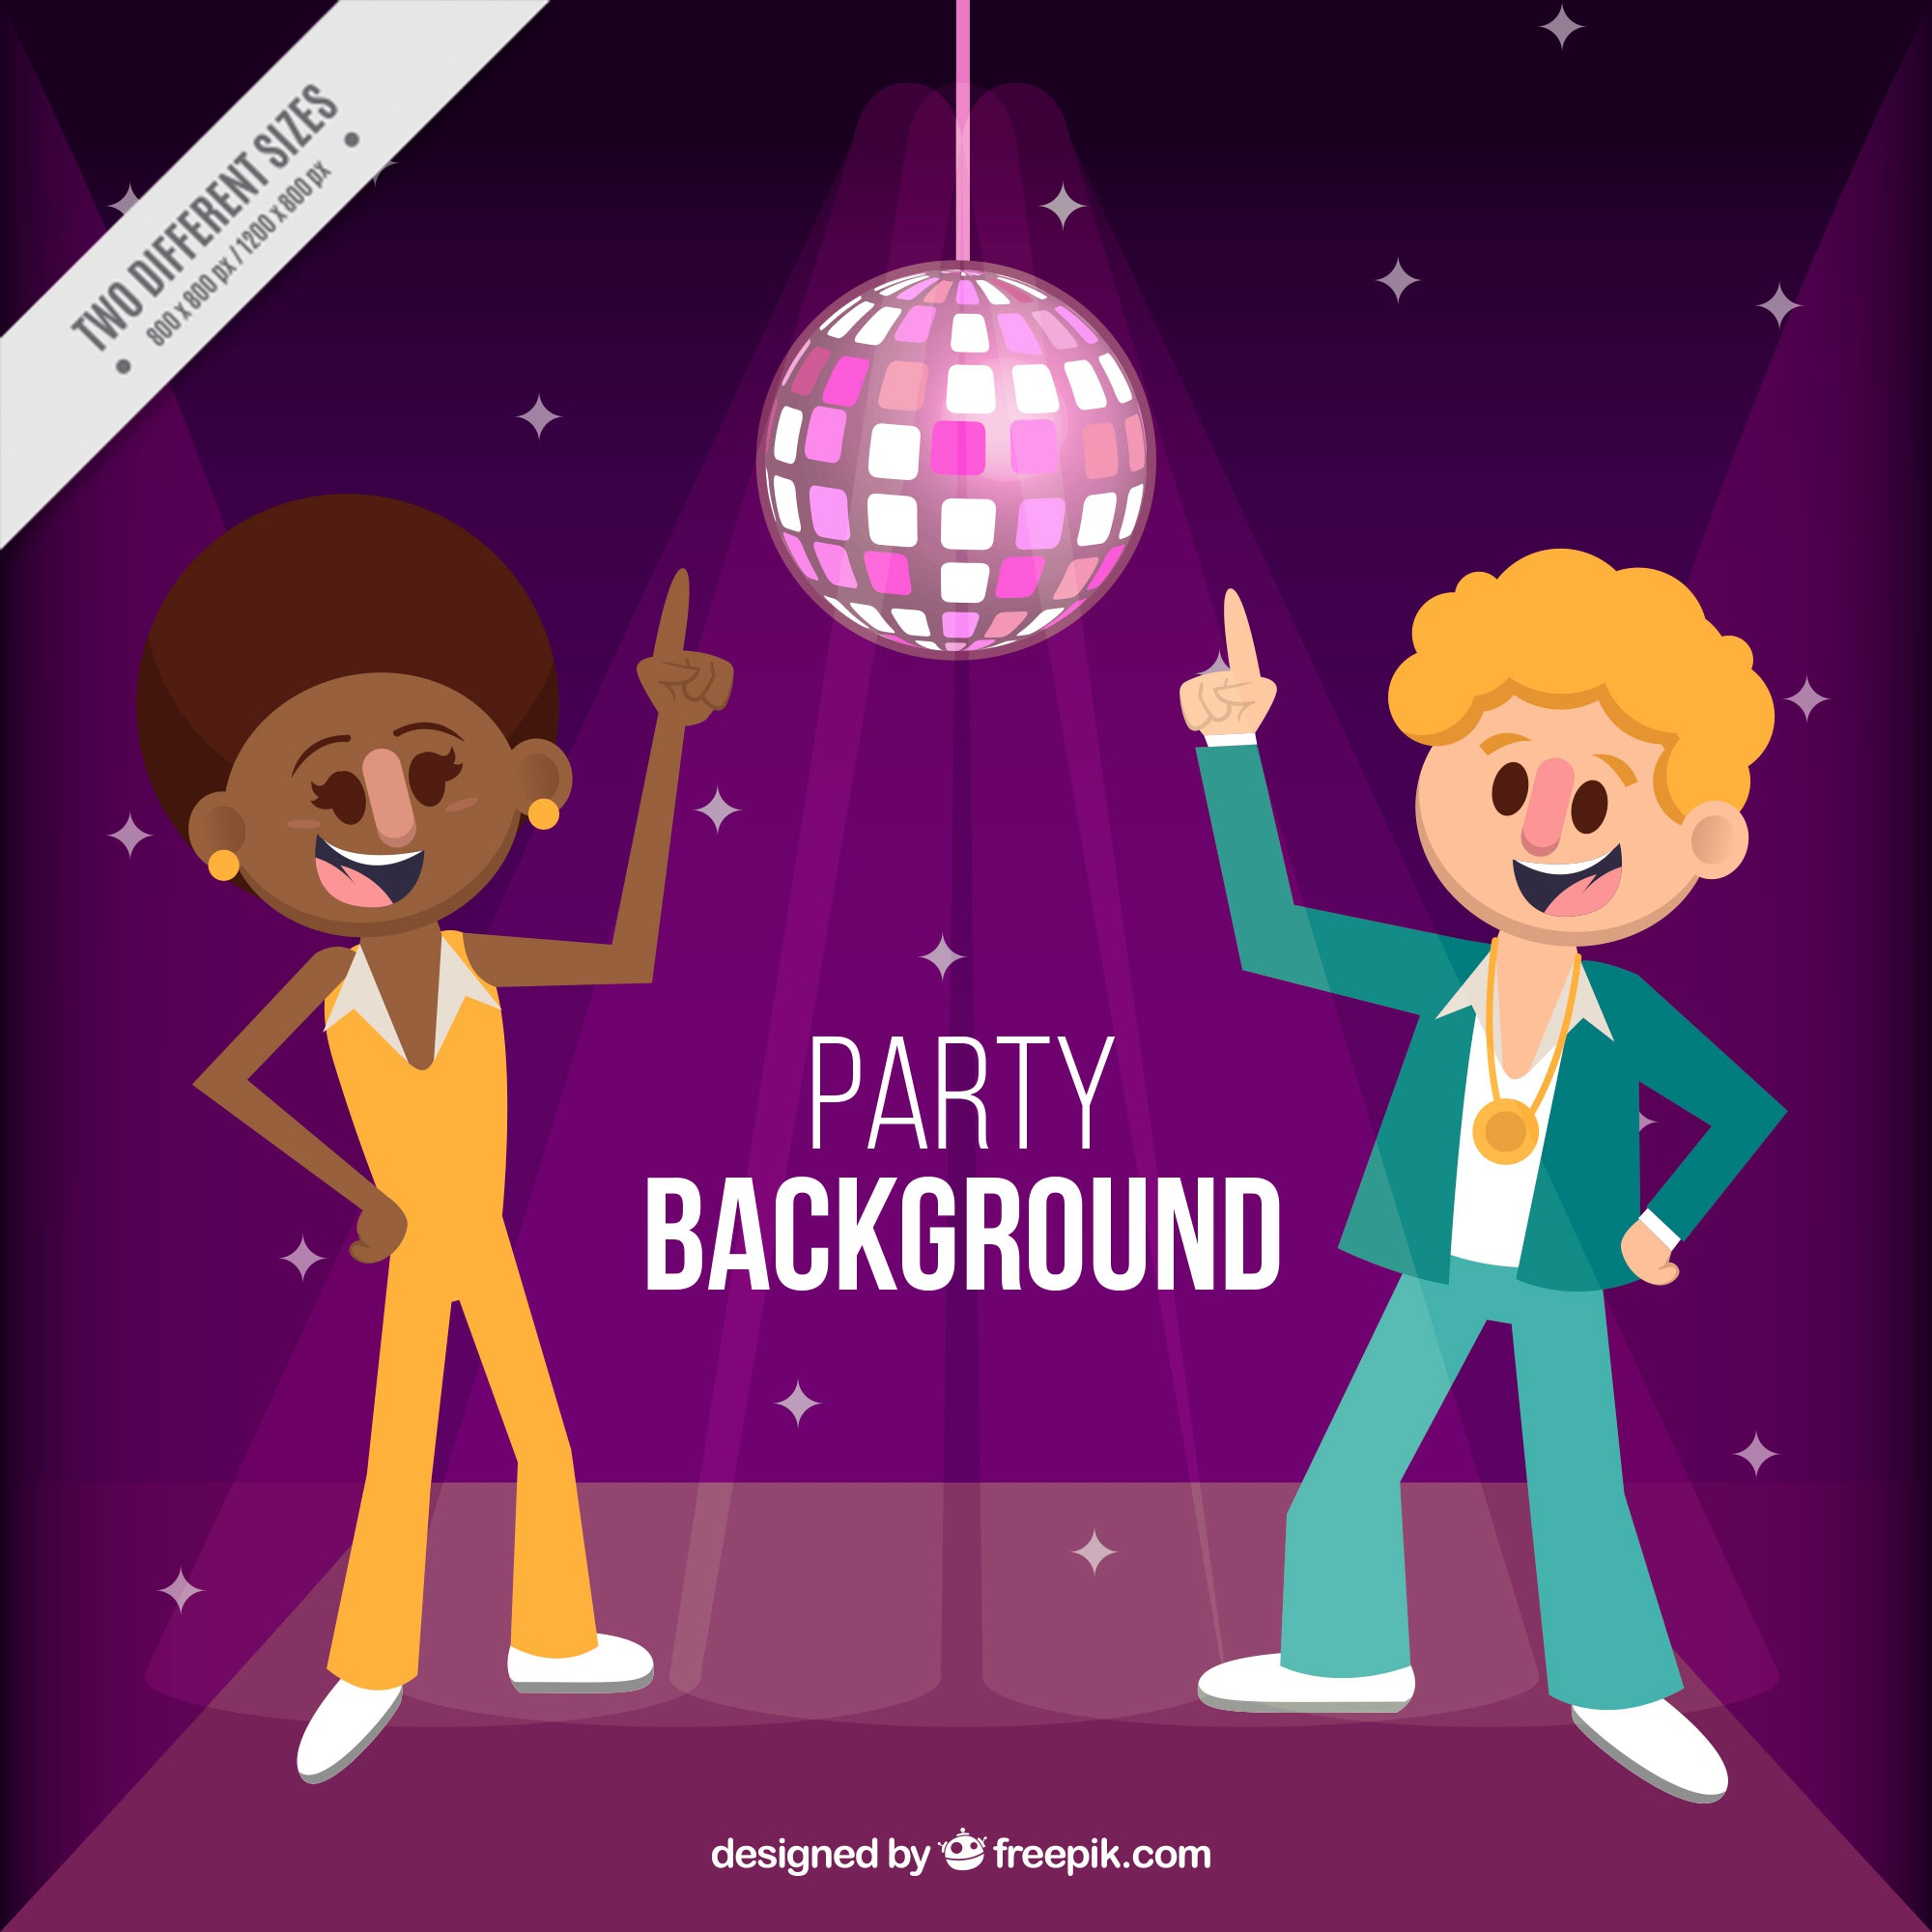 Party background with two people dancing